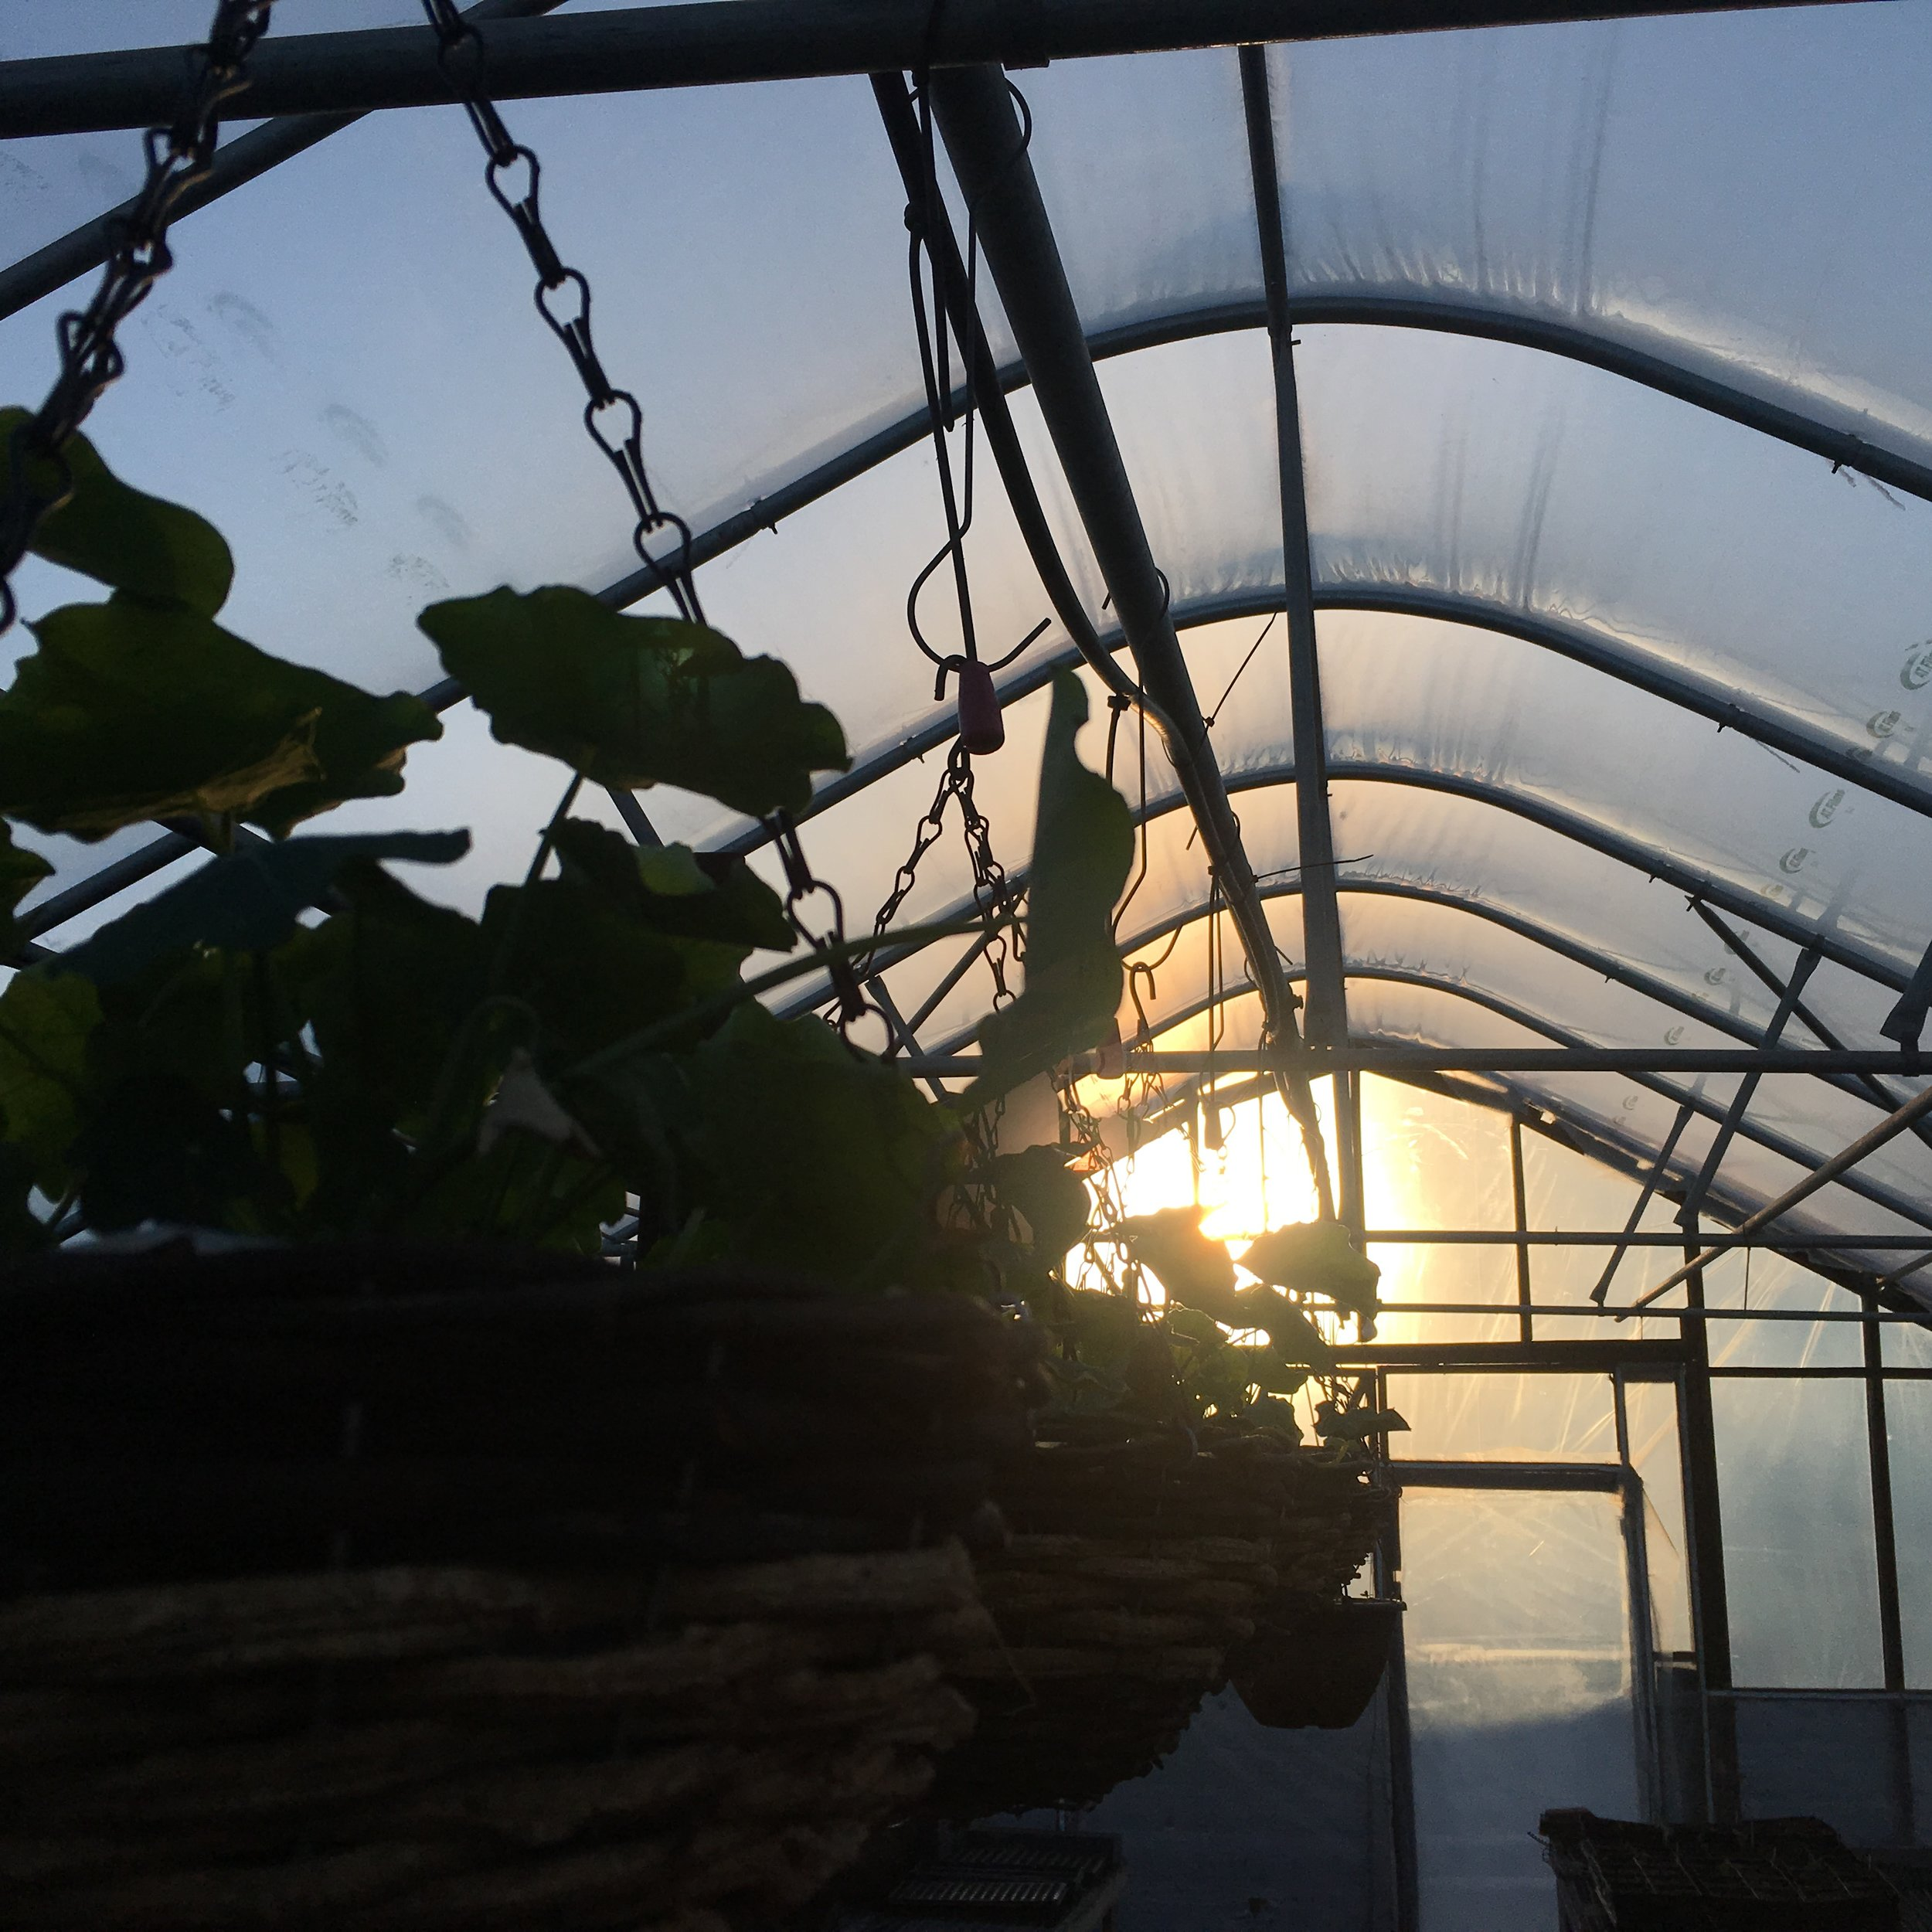 One year ago today in the greenhouse.